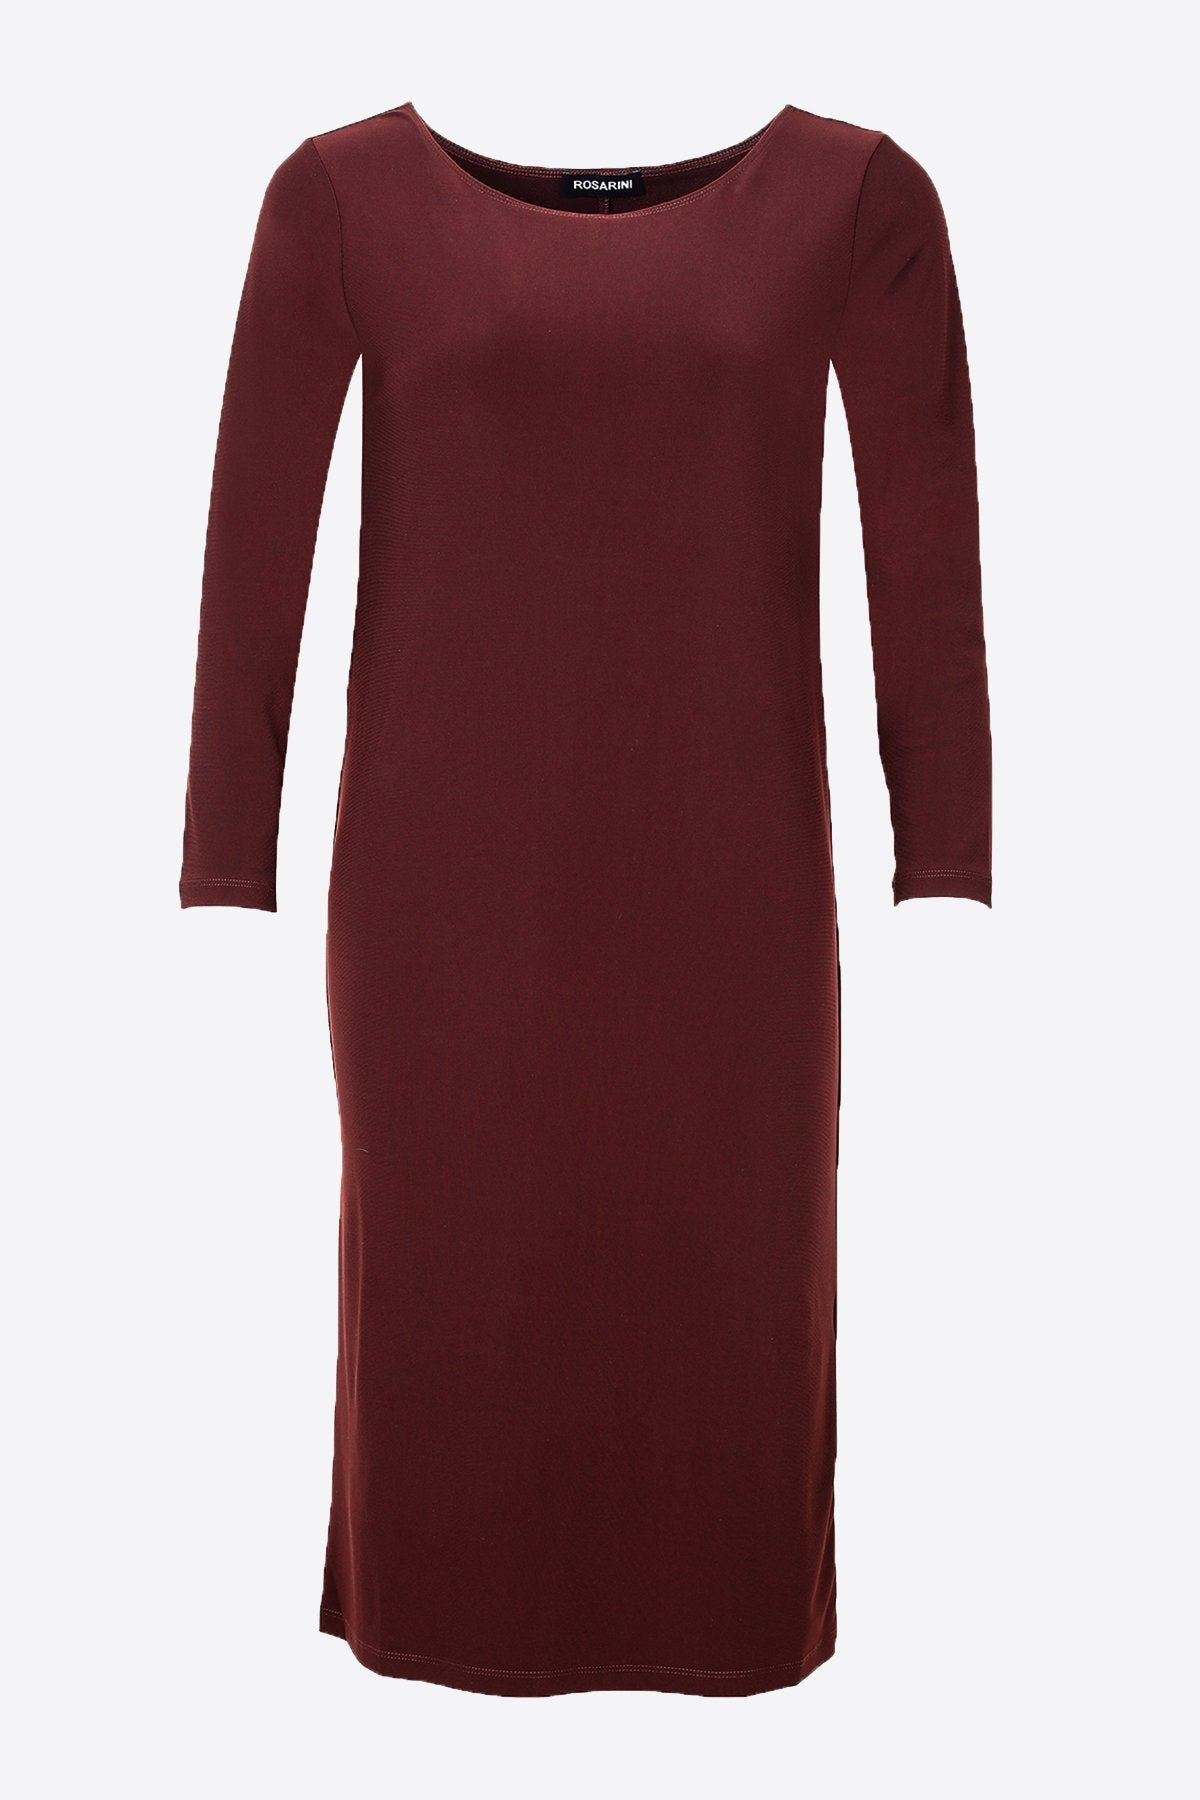 PLUS SIZE MRS PARK DRESS CHESTNUT